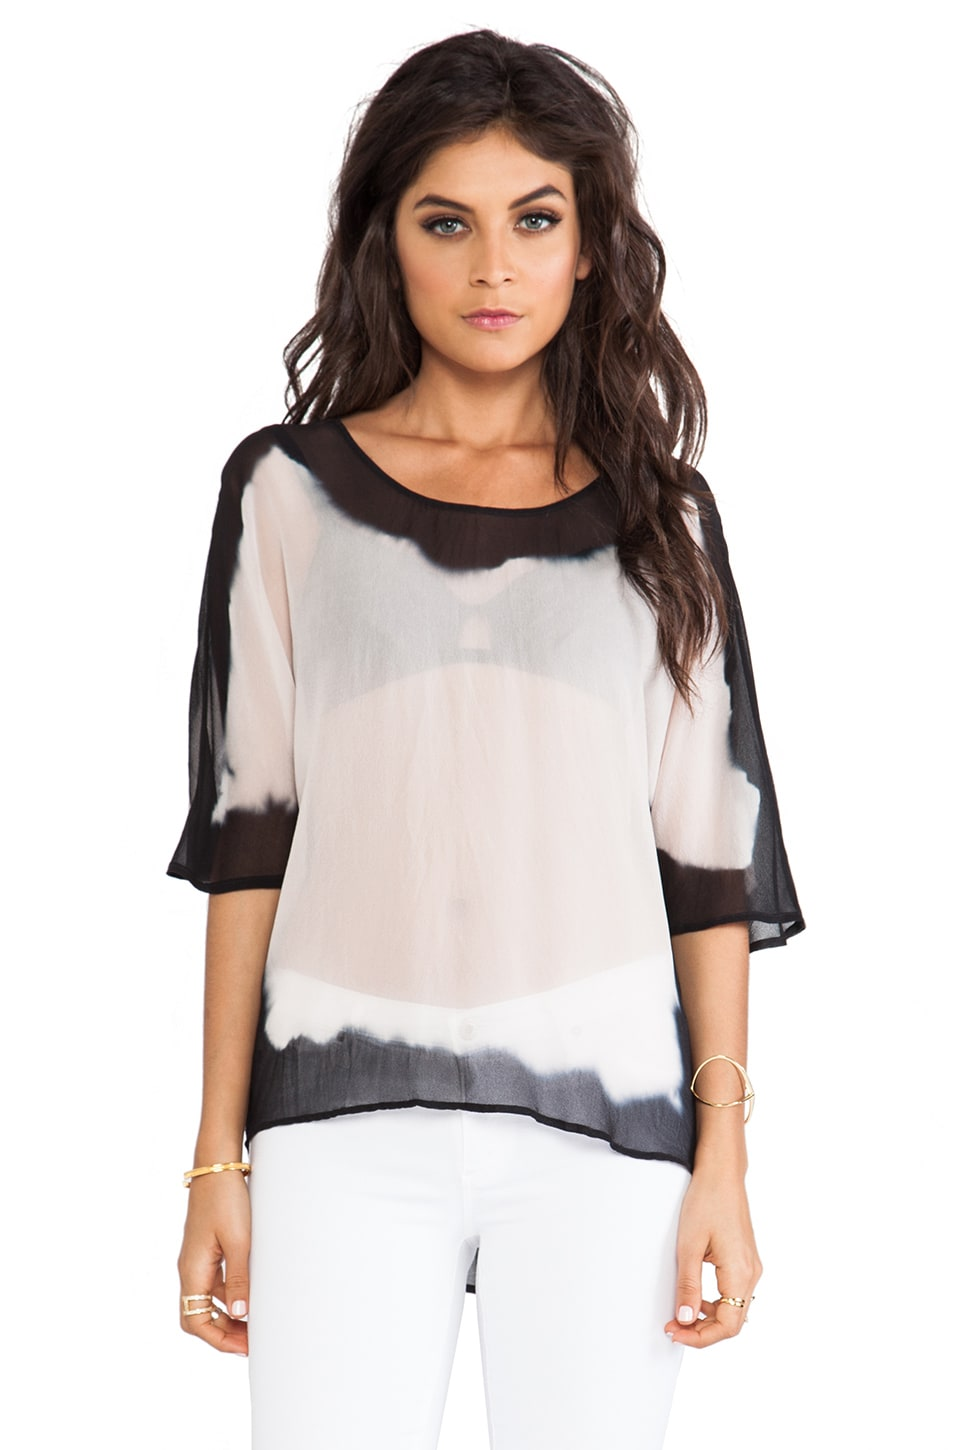 Gypsy 05 Mixed Silk Easy Top in Cream & Black